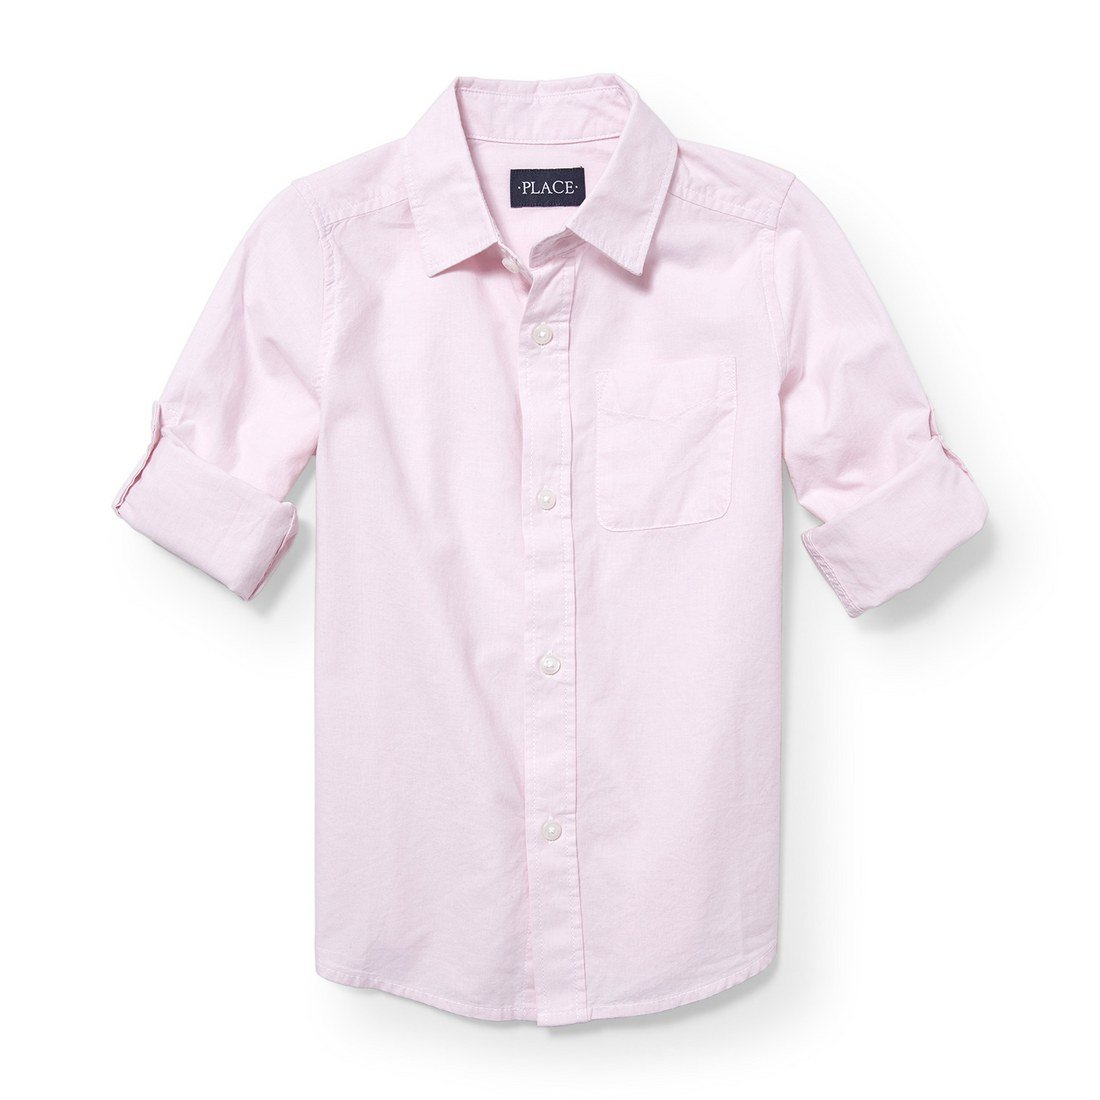 The Children's Place Big Boys' Roll Tab Woven Button Down Shirt